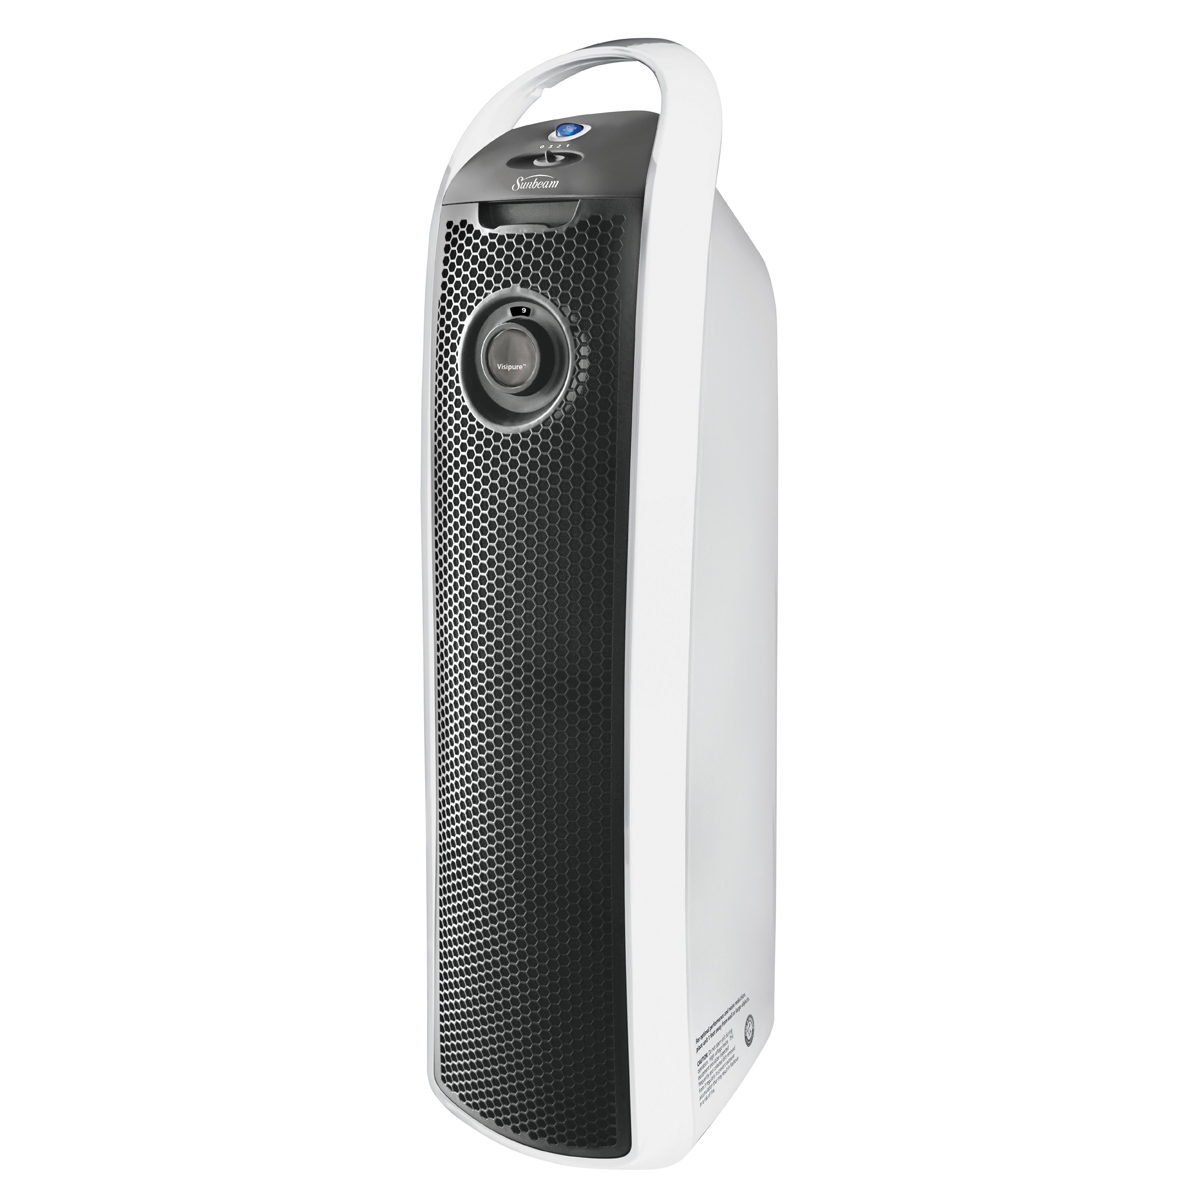 Sunbeam® Designer Series™ Visipure™ Tower Air Purifier White  #326799